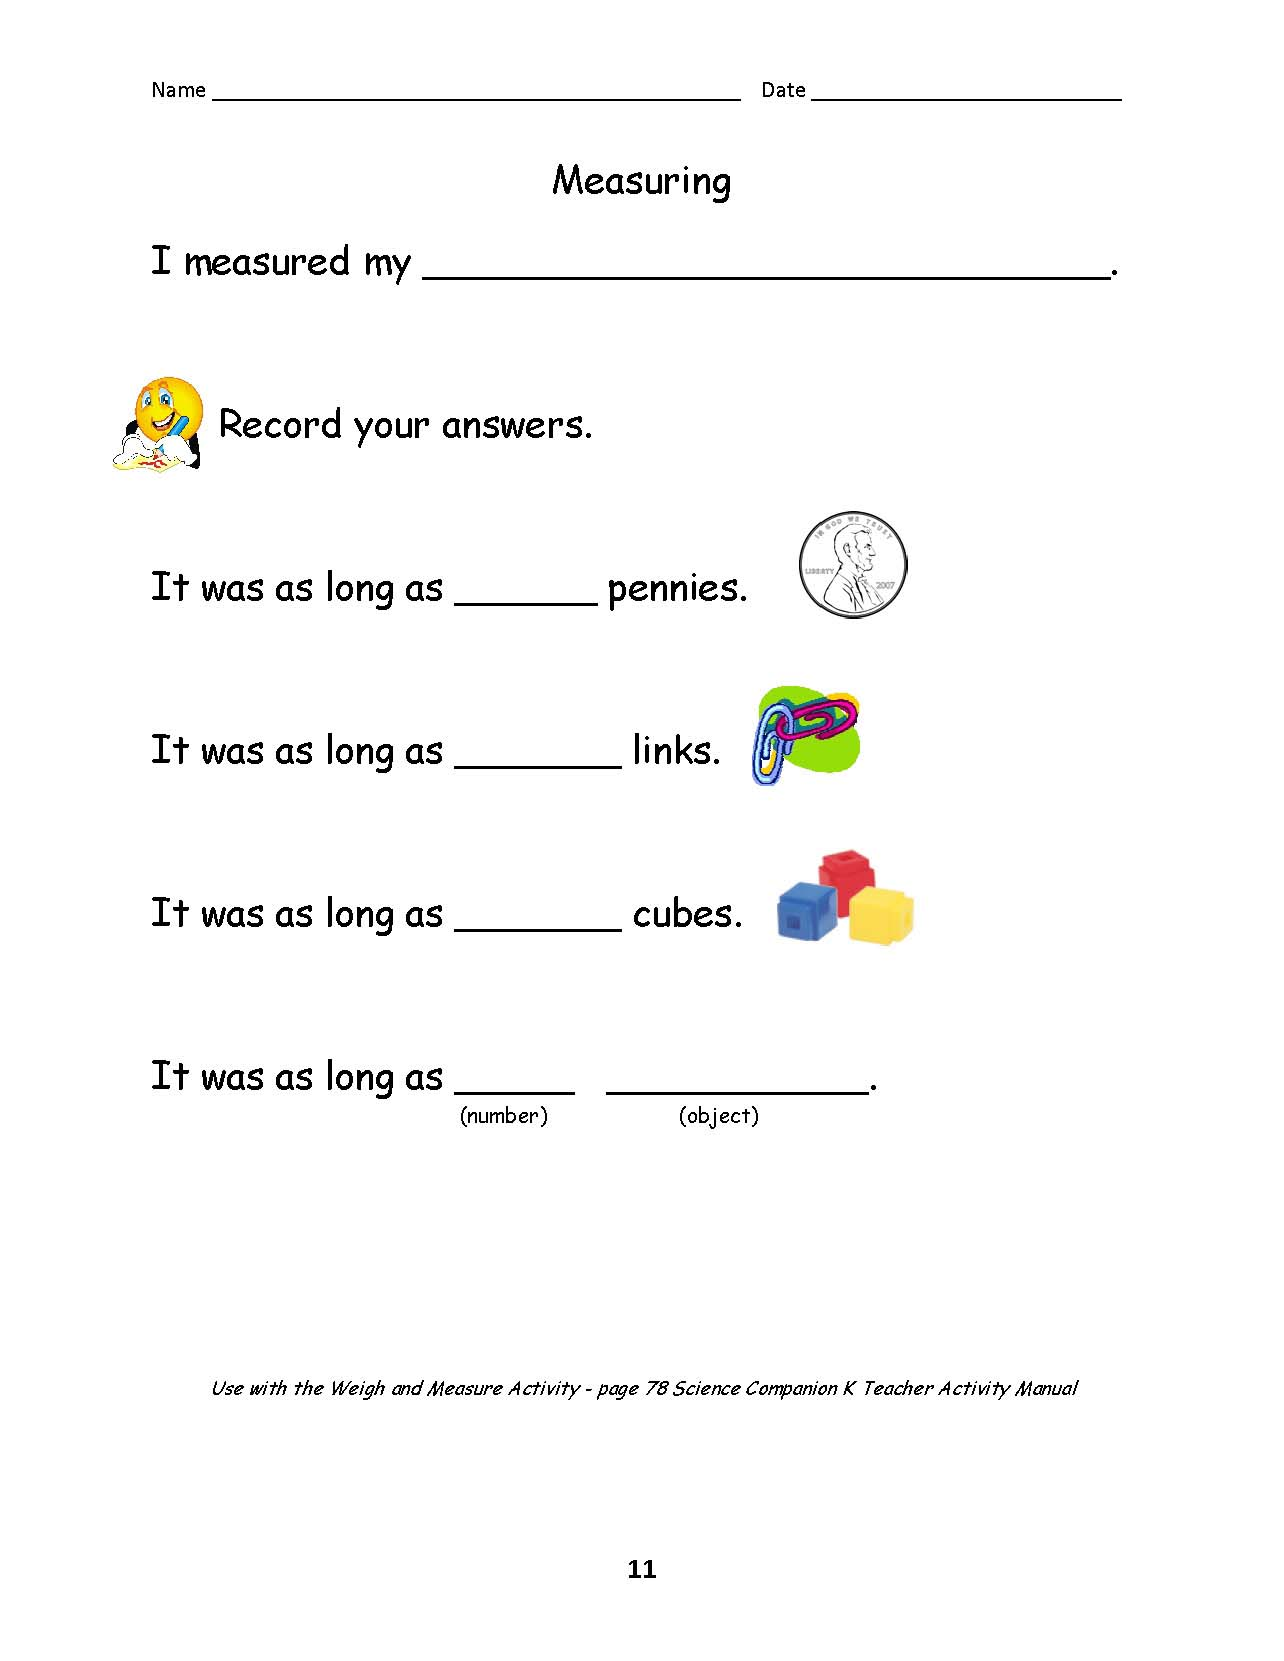 Science and Children Online Connections – Gravity Worksheet Middle School